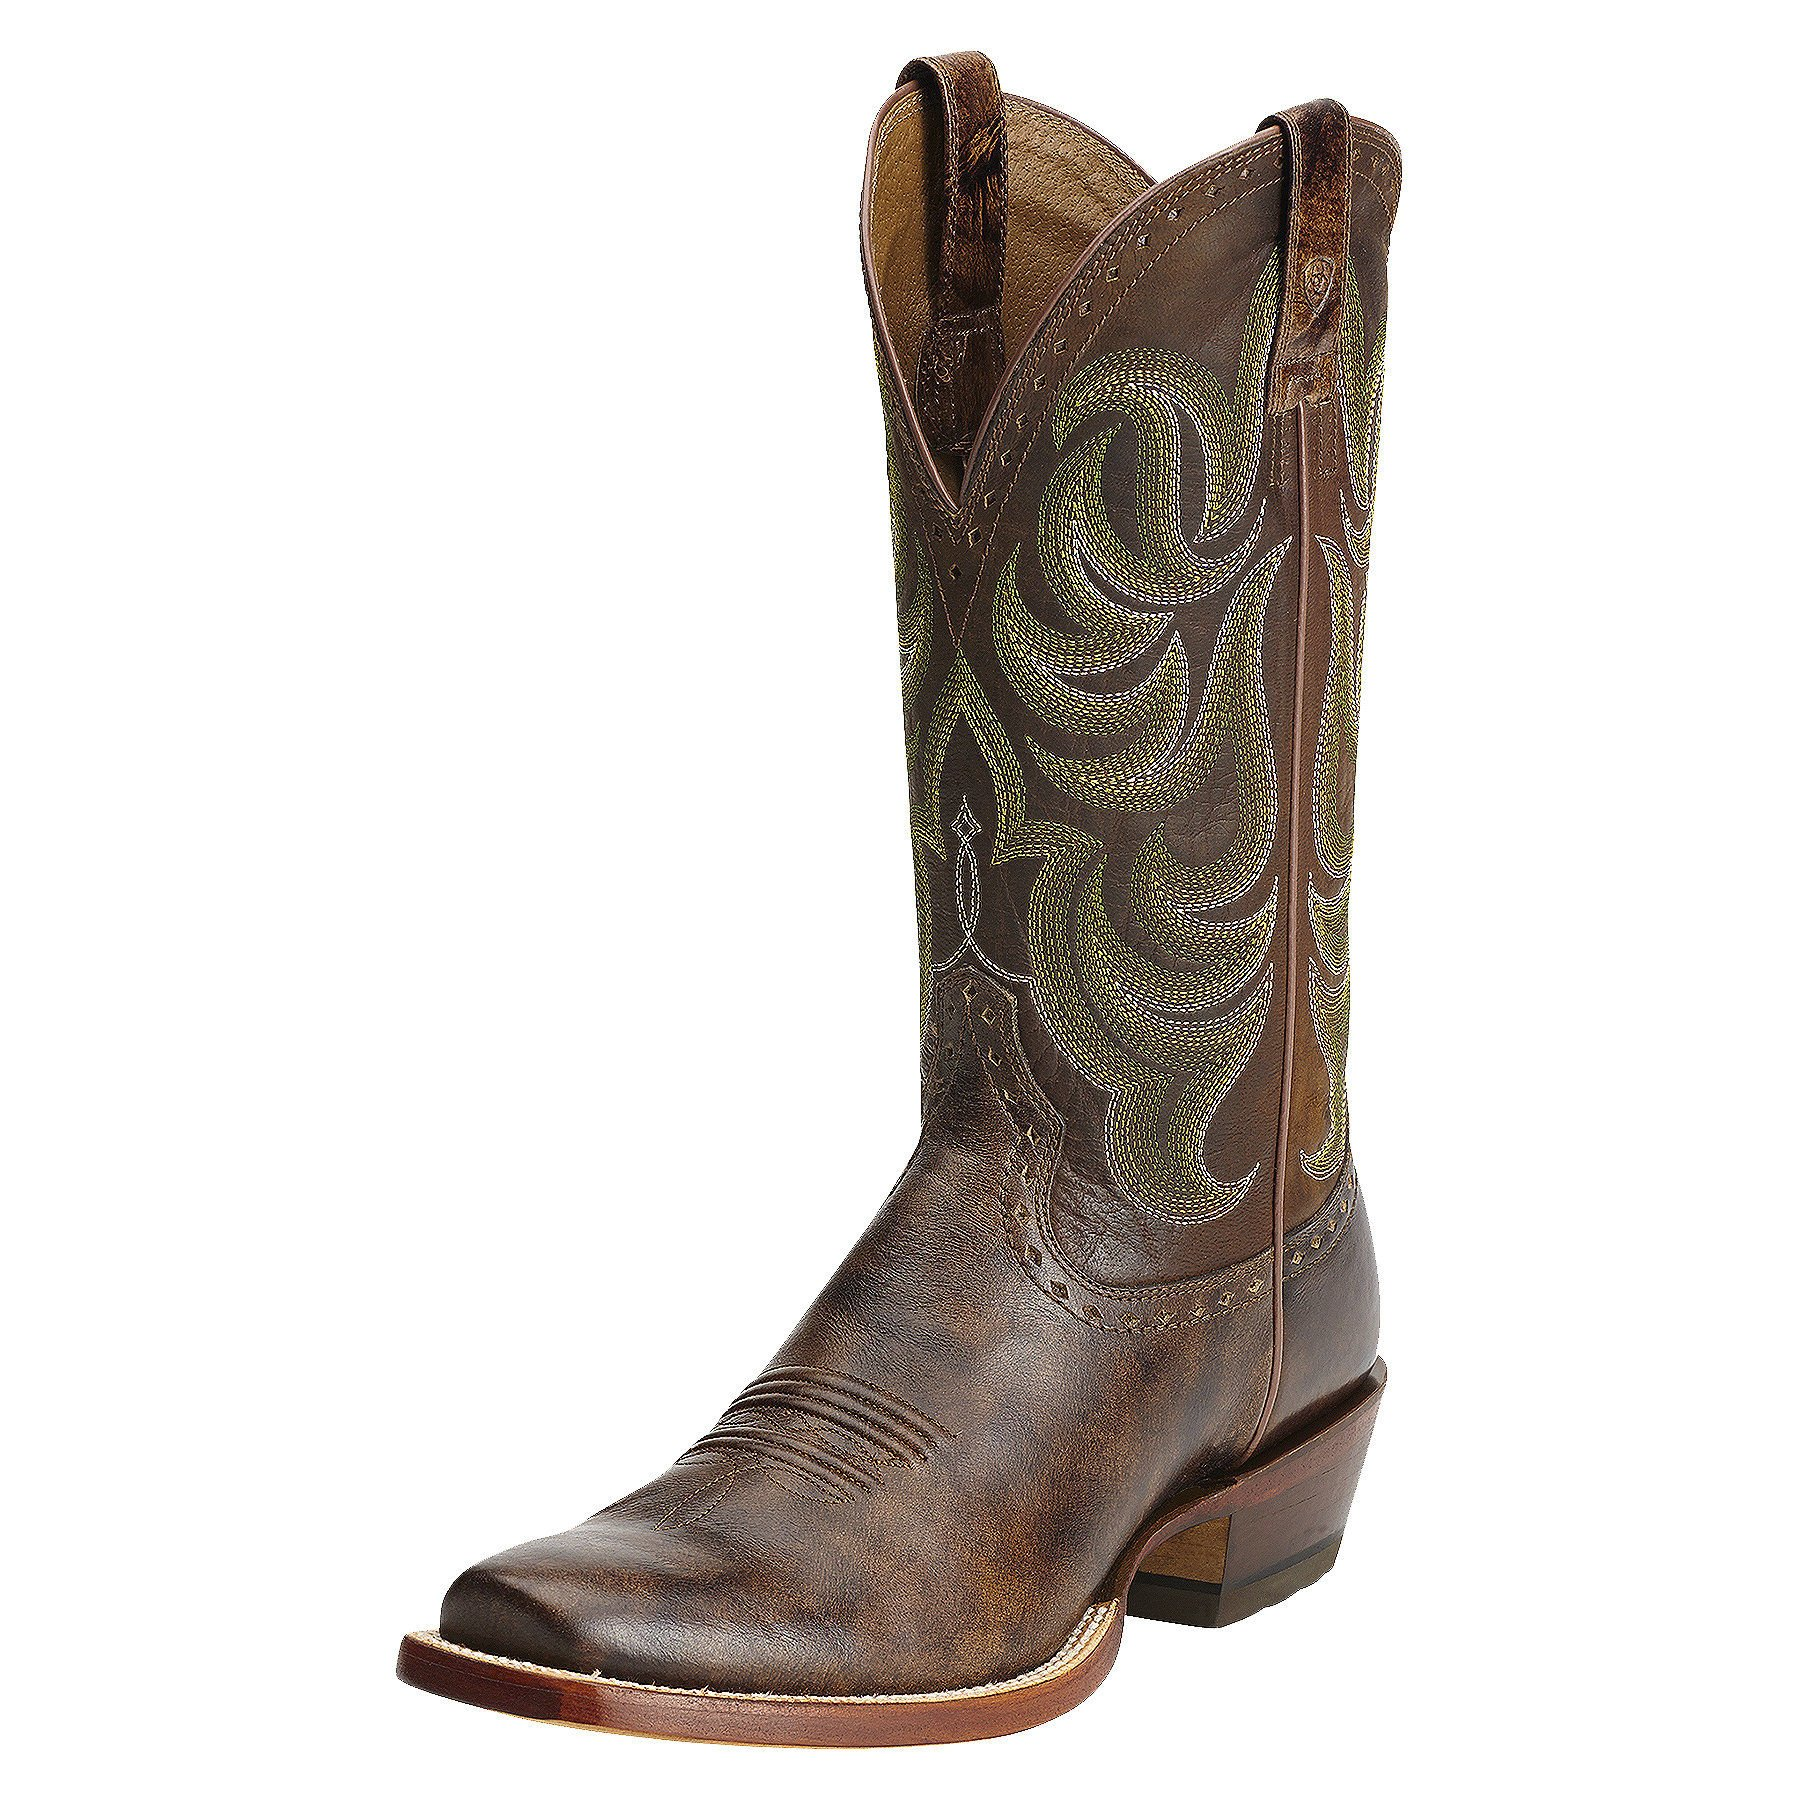 Ariat Men's Turnback Western Cowboy Boot, Buckskin, 12 M US